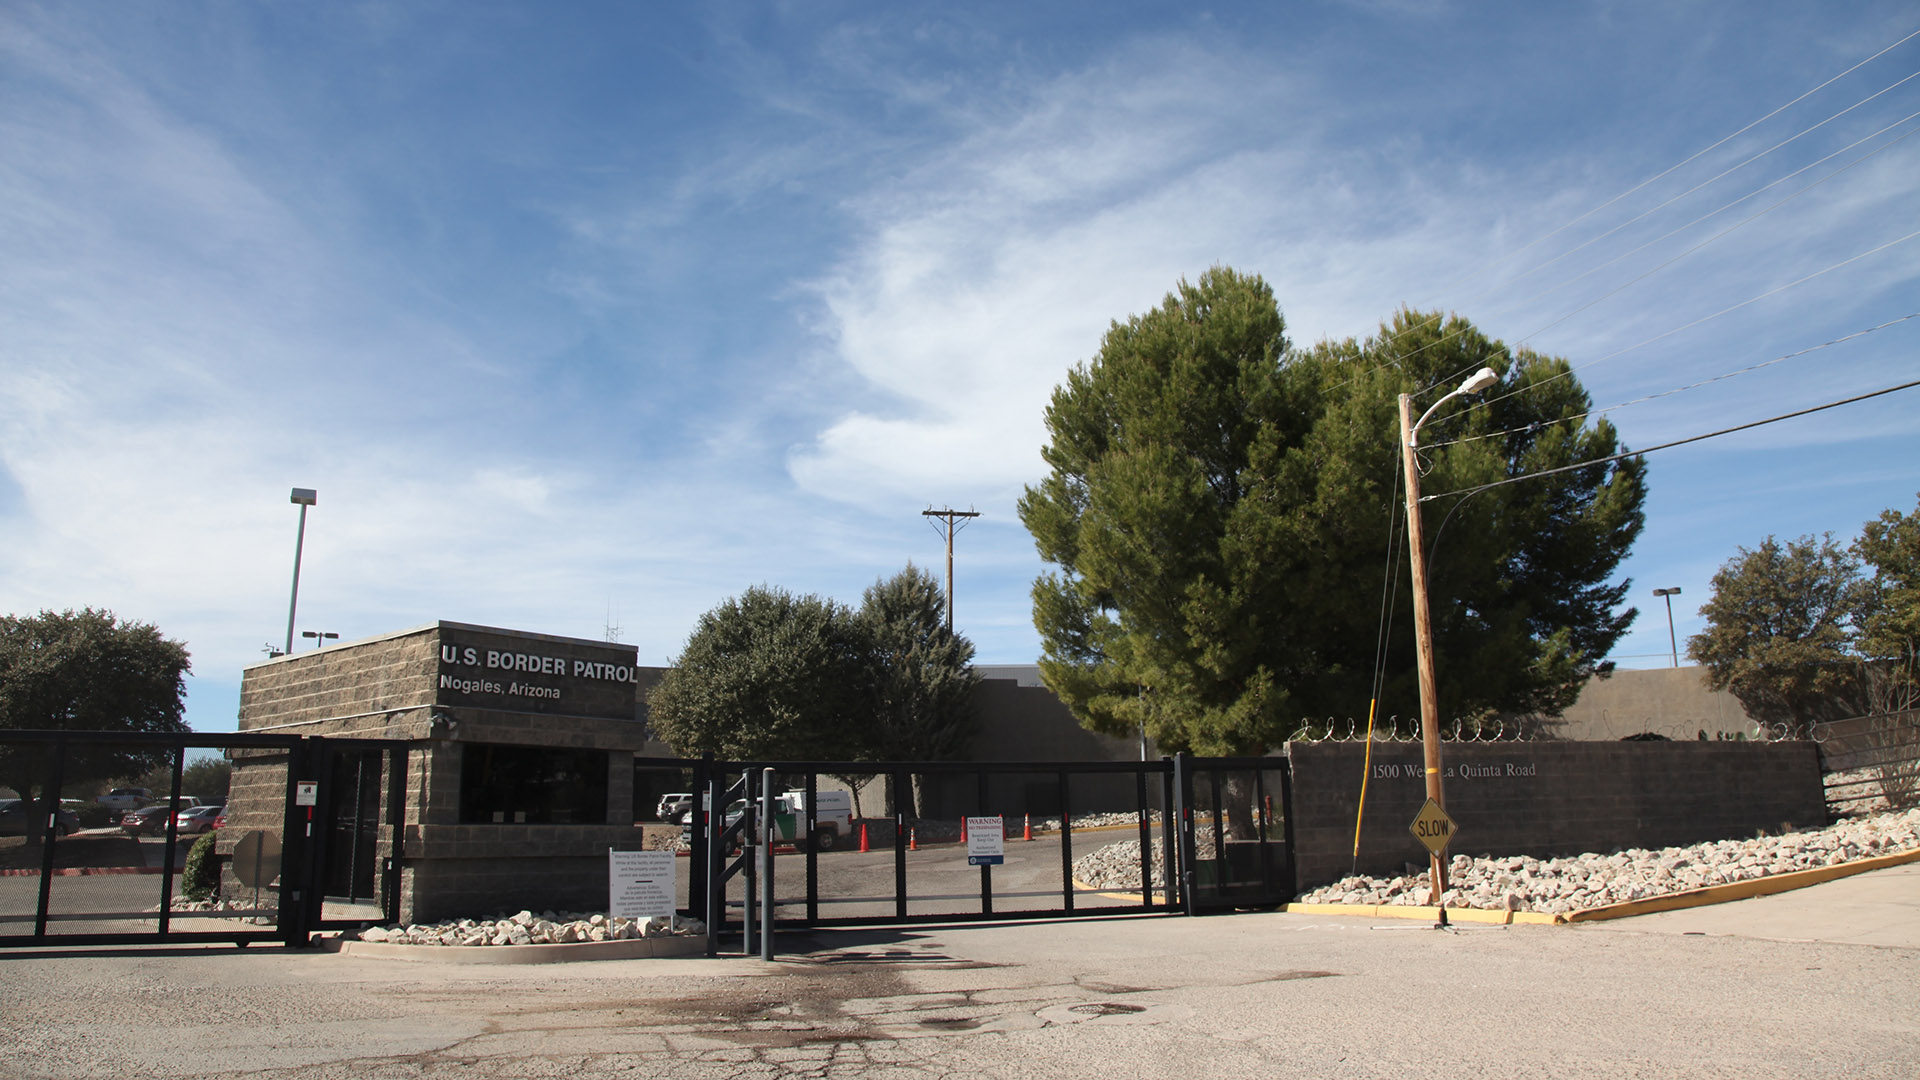 The entrance to the Nogales Border Patrol Station, February 2017.